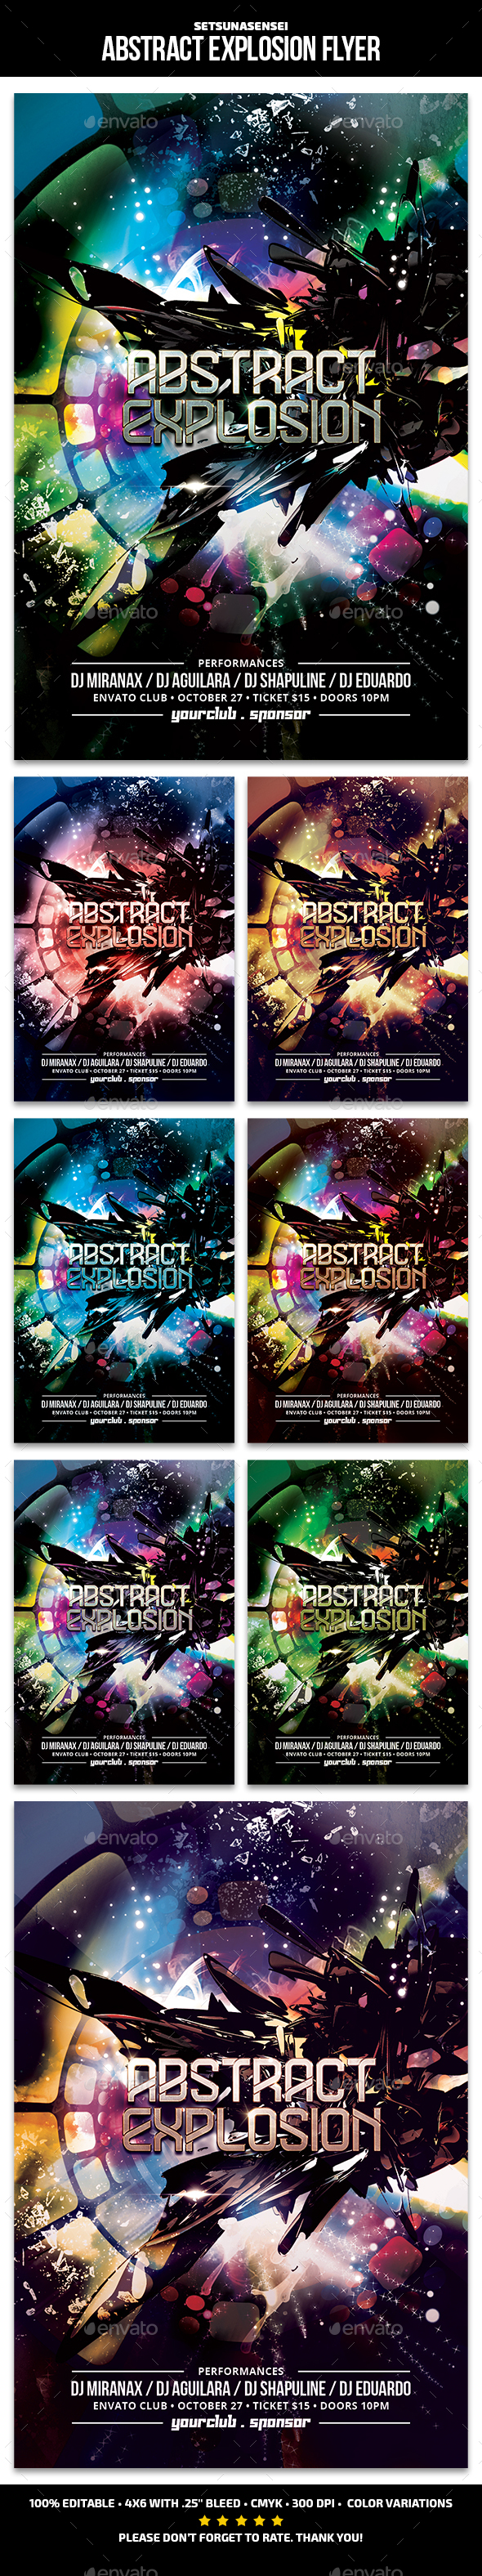 Abstract Explosion Flyer - Clubs & Parties Events